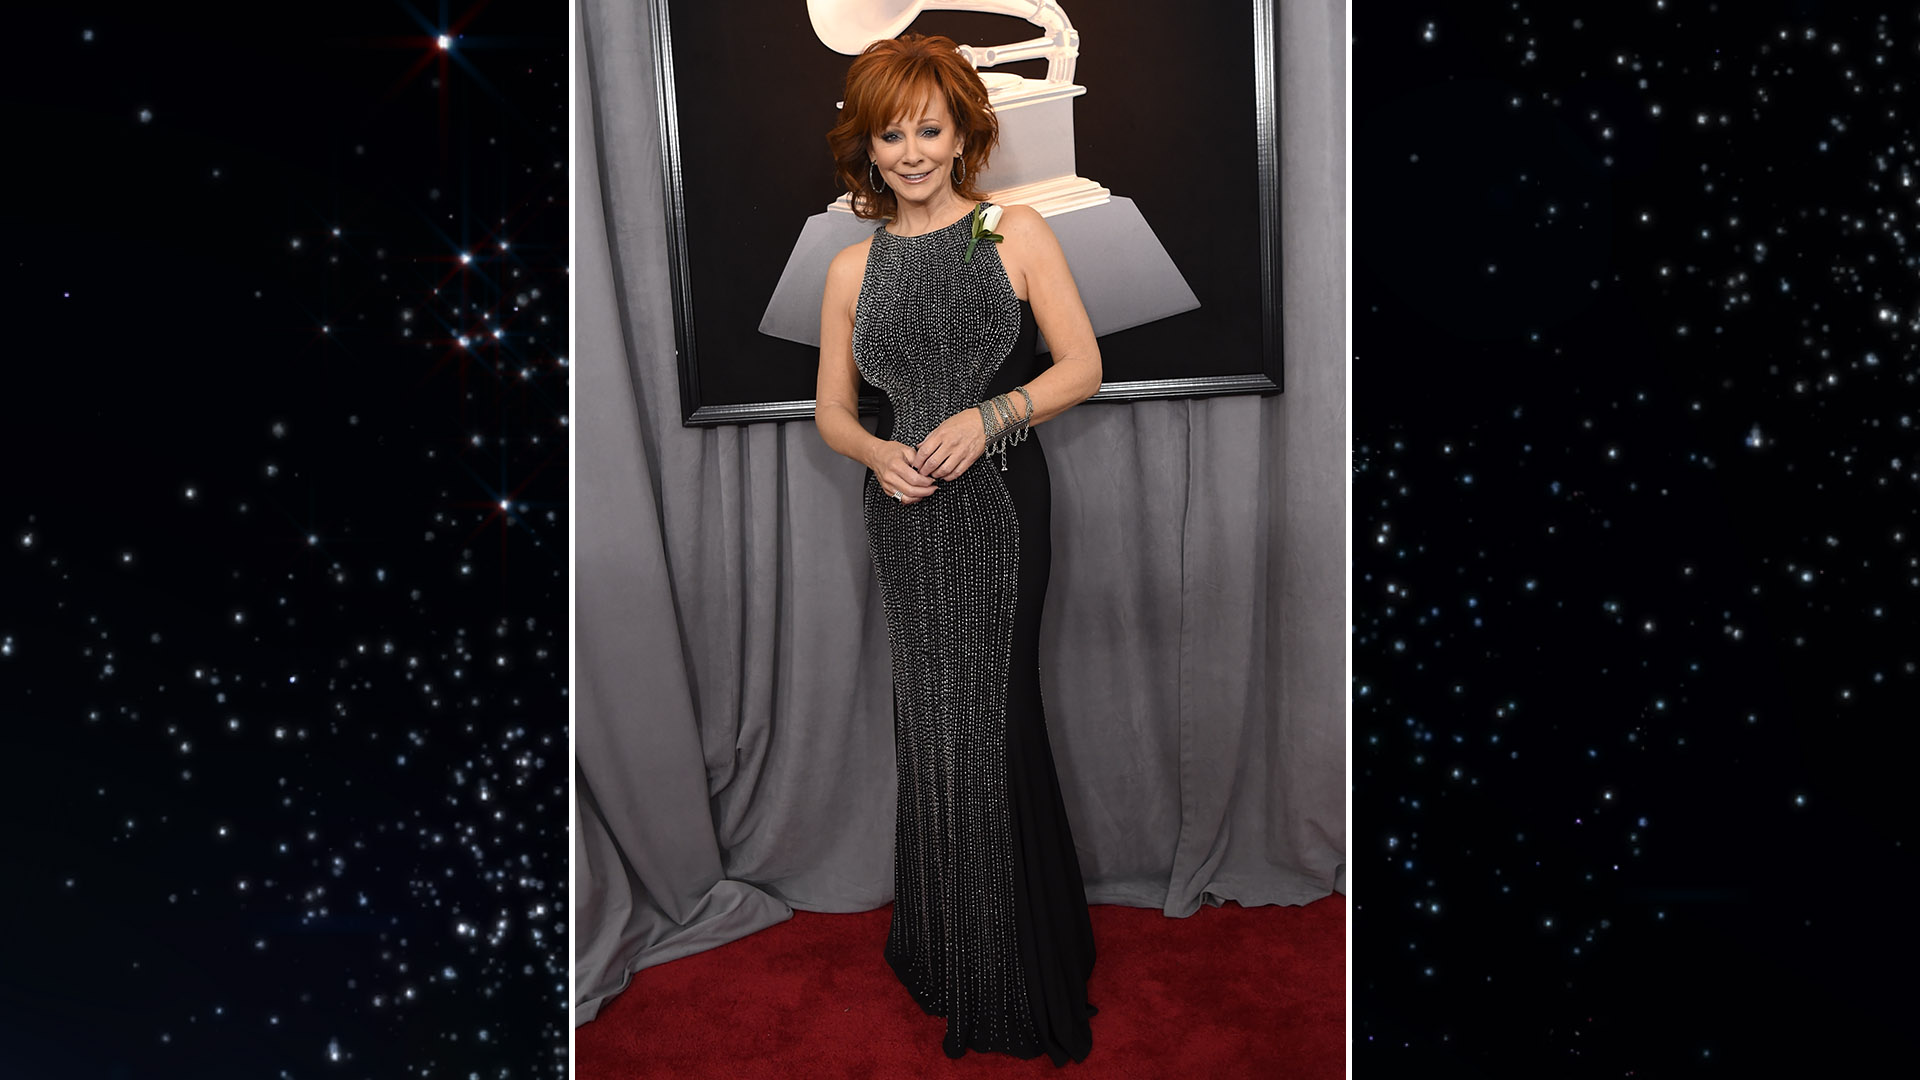 Queen of Country Reba McEntire looks positively regal in a crystal-encrusted black gown.